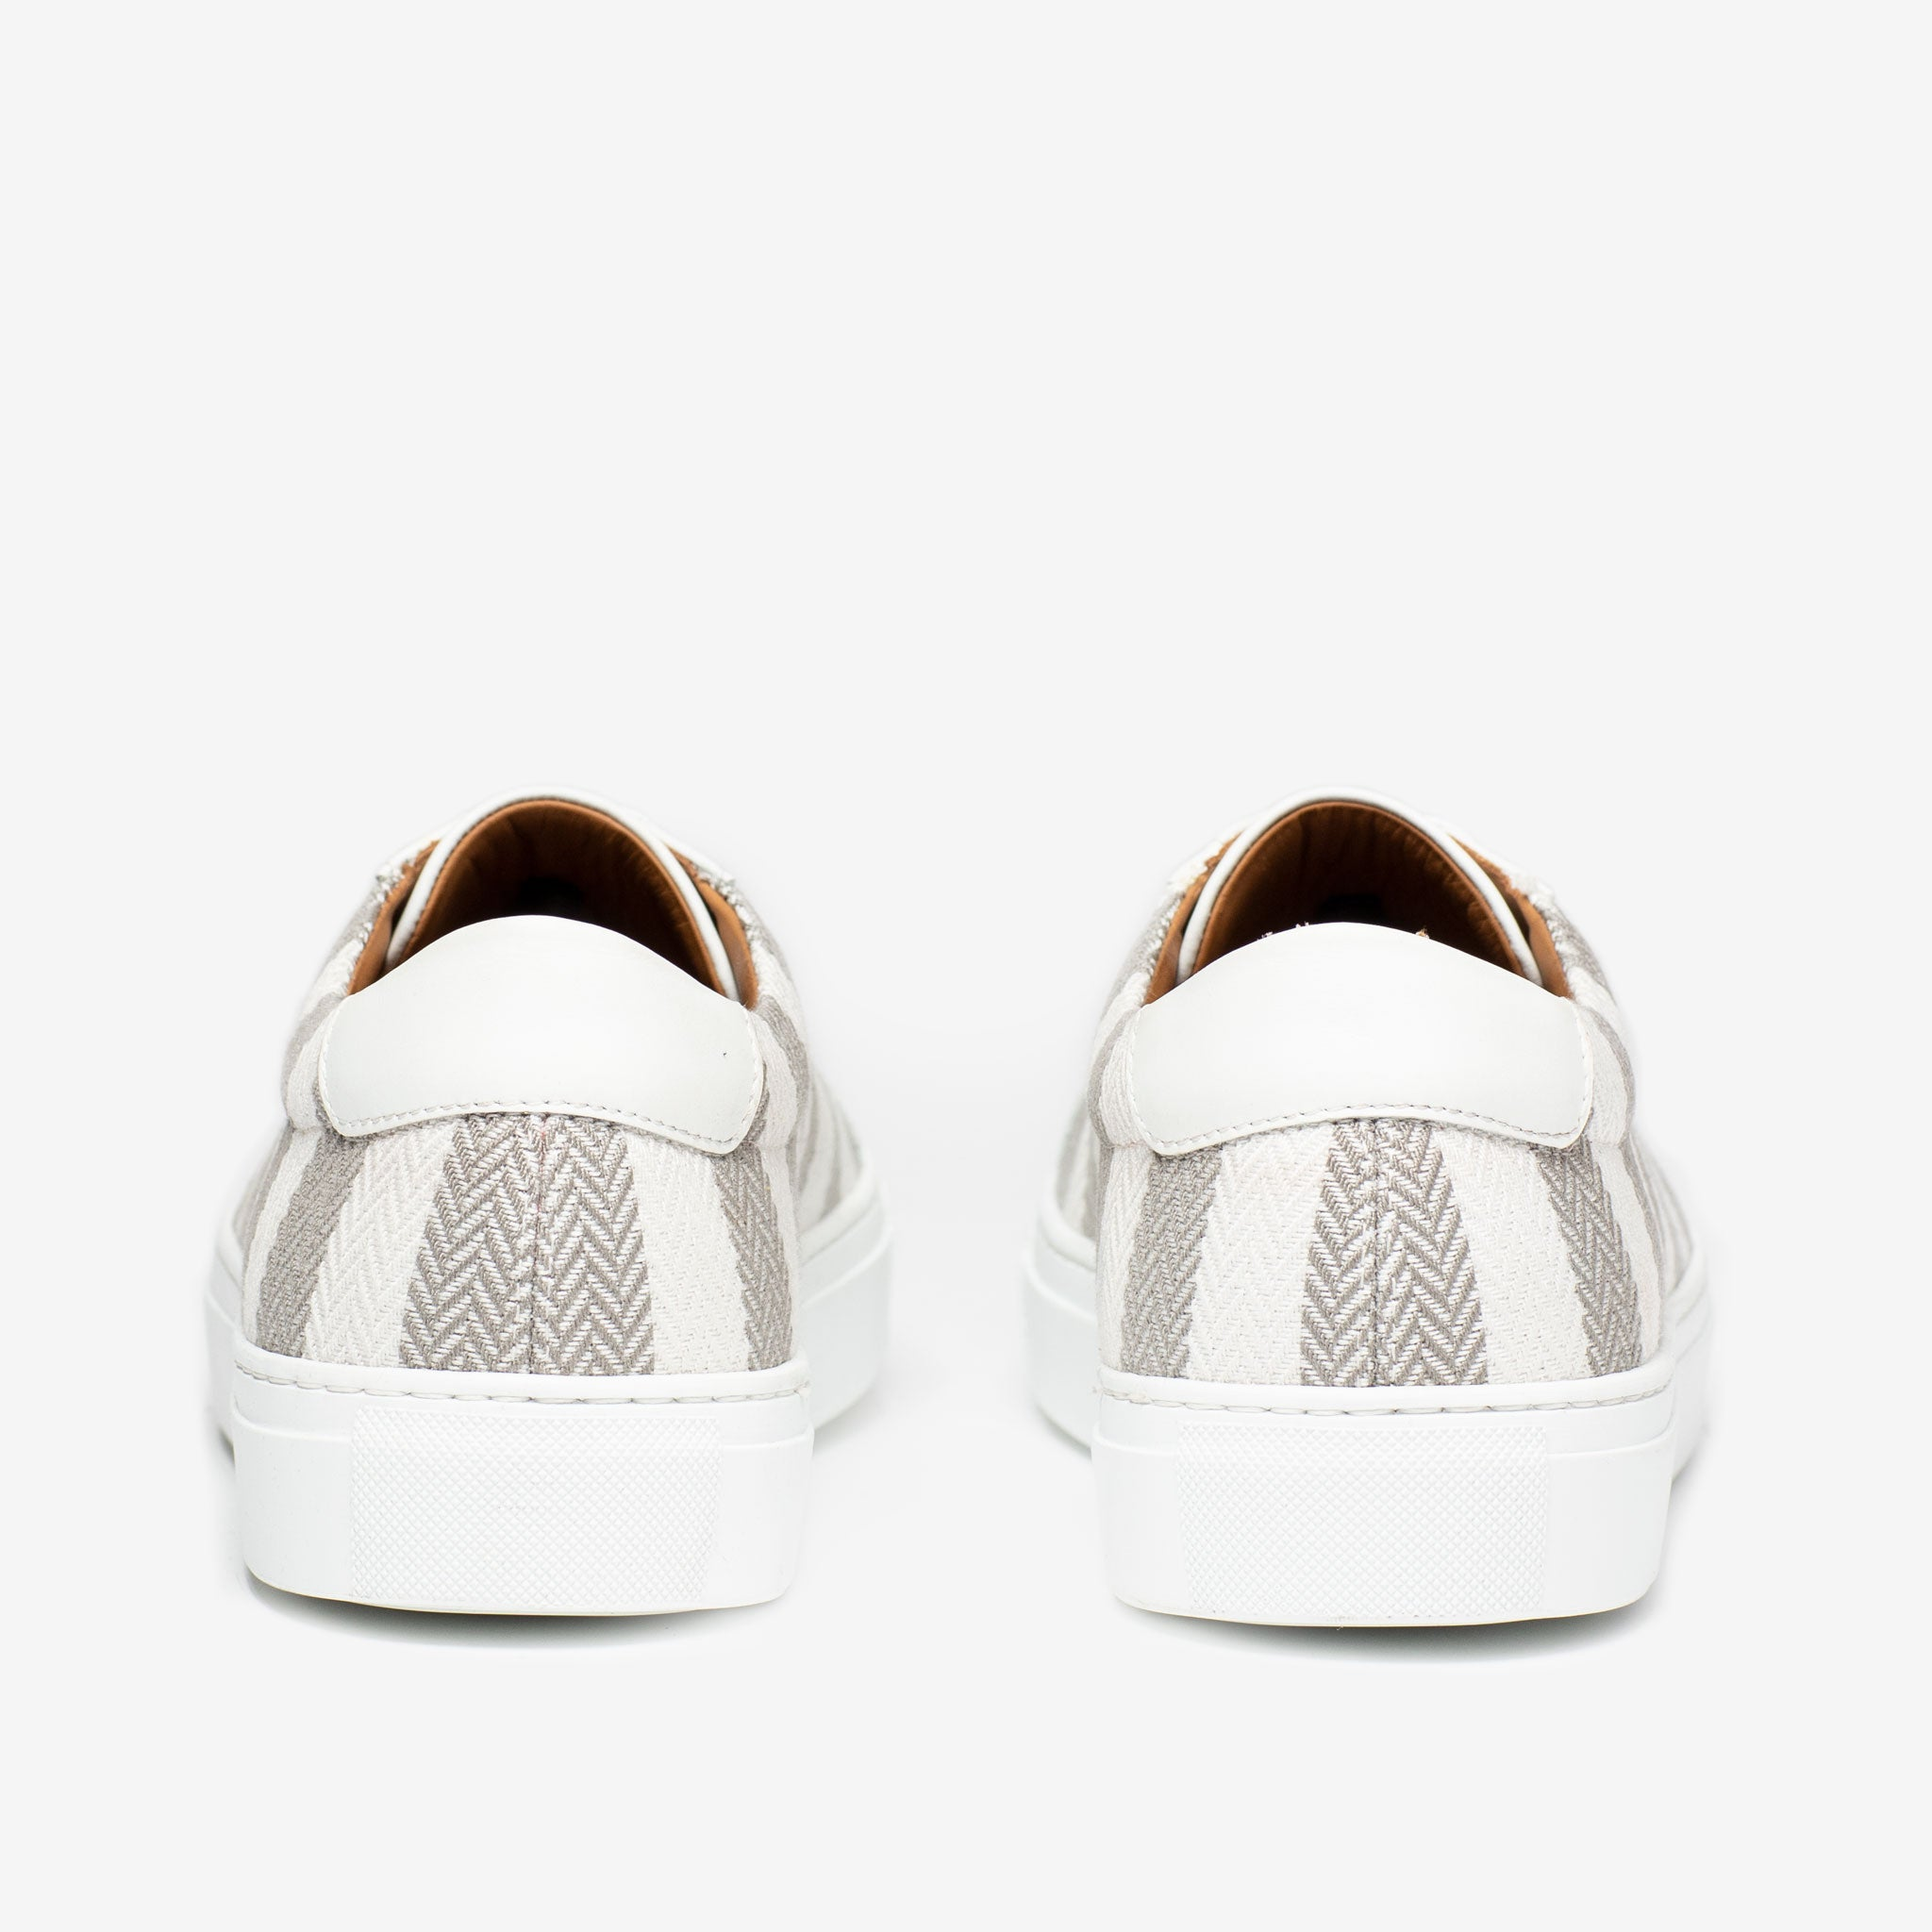 The Sneaker in Grey Stripes Heels